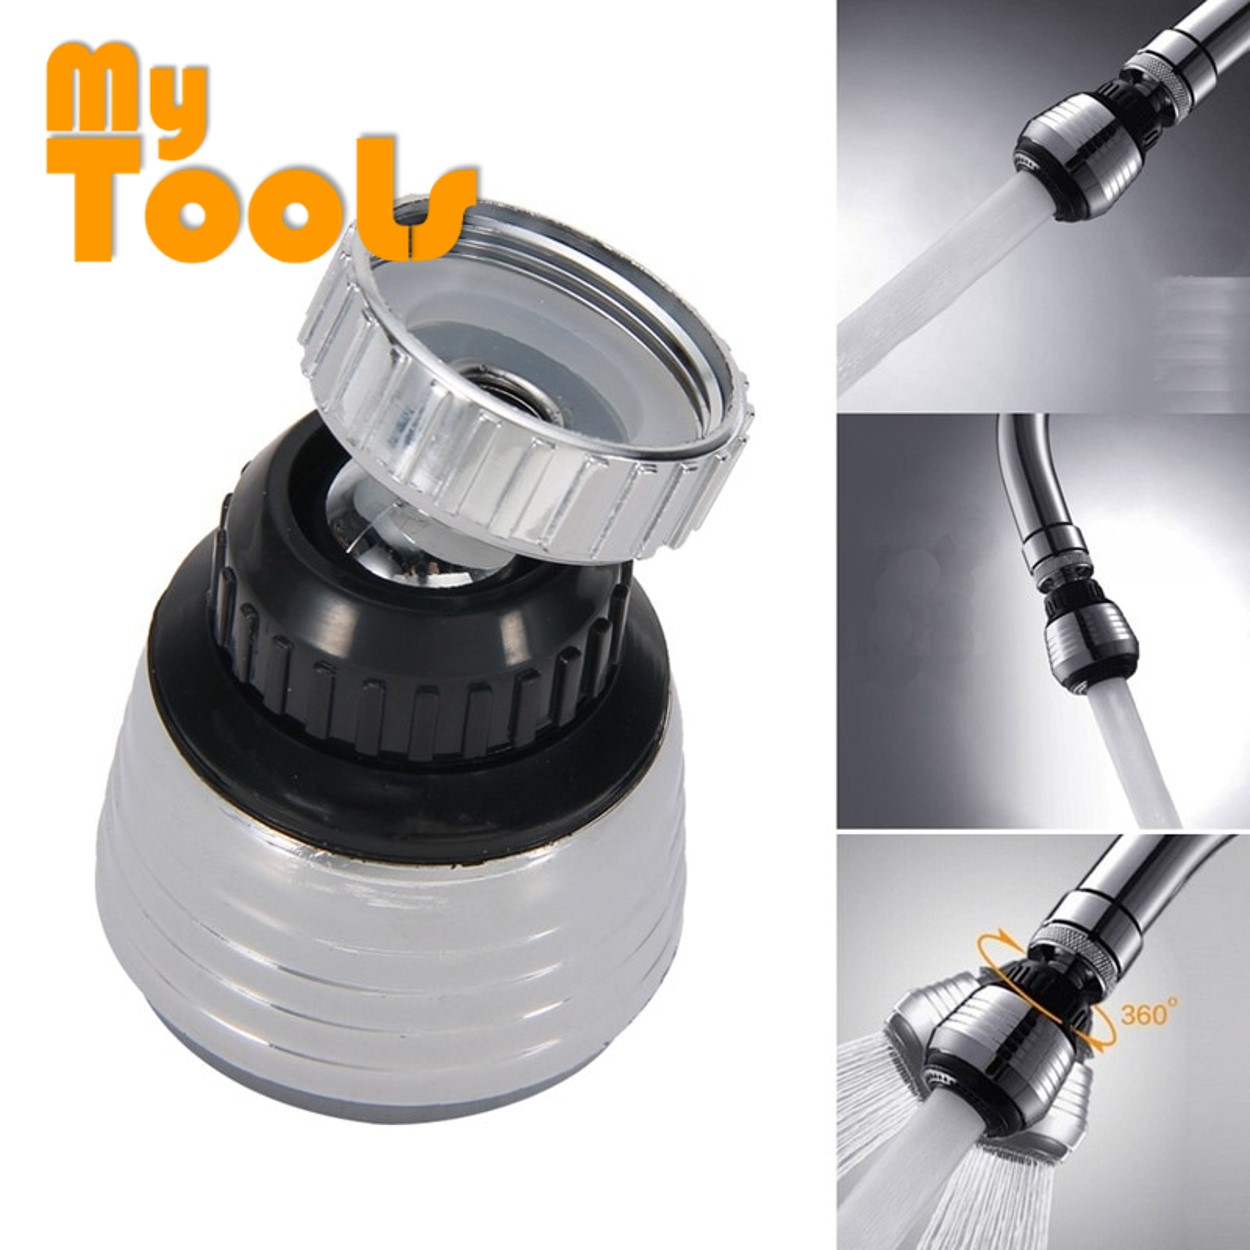 Mytools 360 Degree Swivel Water Saving Tap Aerator Diffuser Faucet Nozzle Filter Adapter